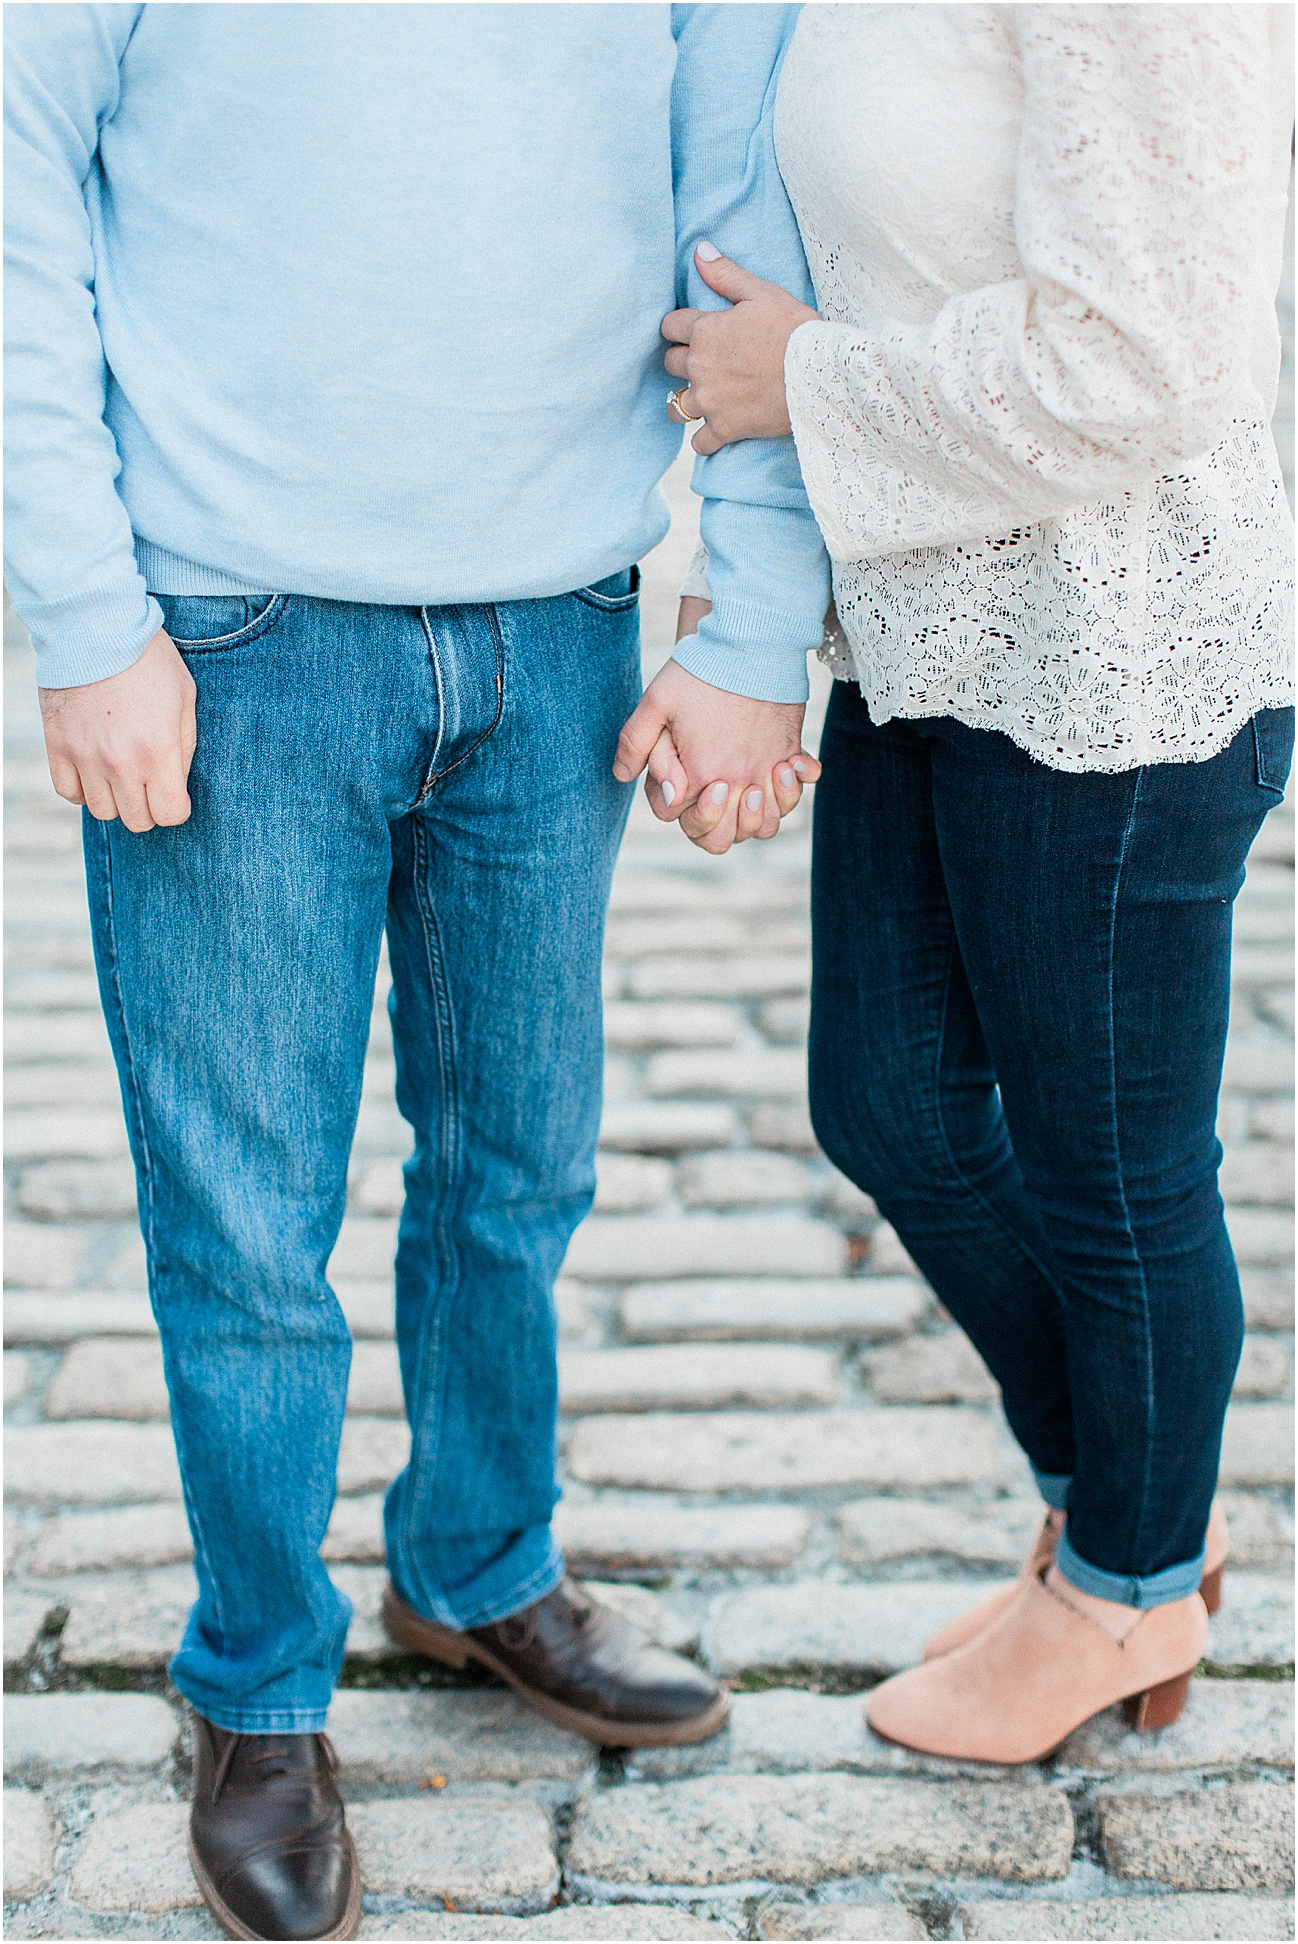 jenny_jared_beacon_hill_acorn_street_seaport_engagement_fall_cape_cod_boston_wedding_photographer_meredith_jane_photography_photo_1539.jpg